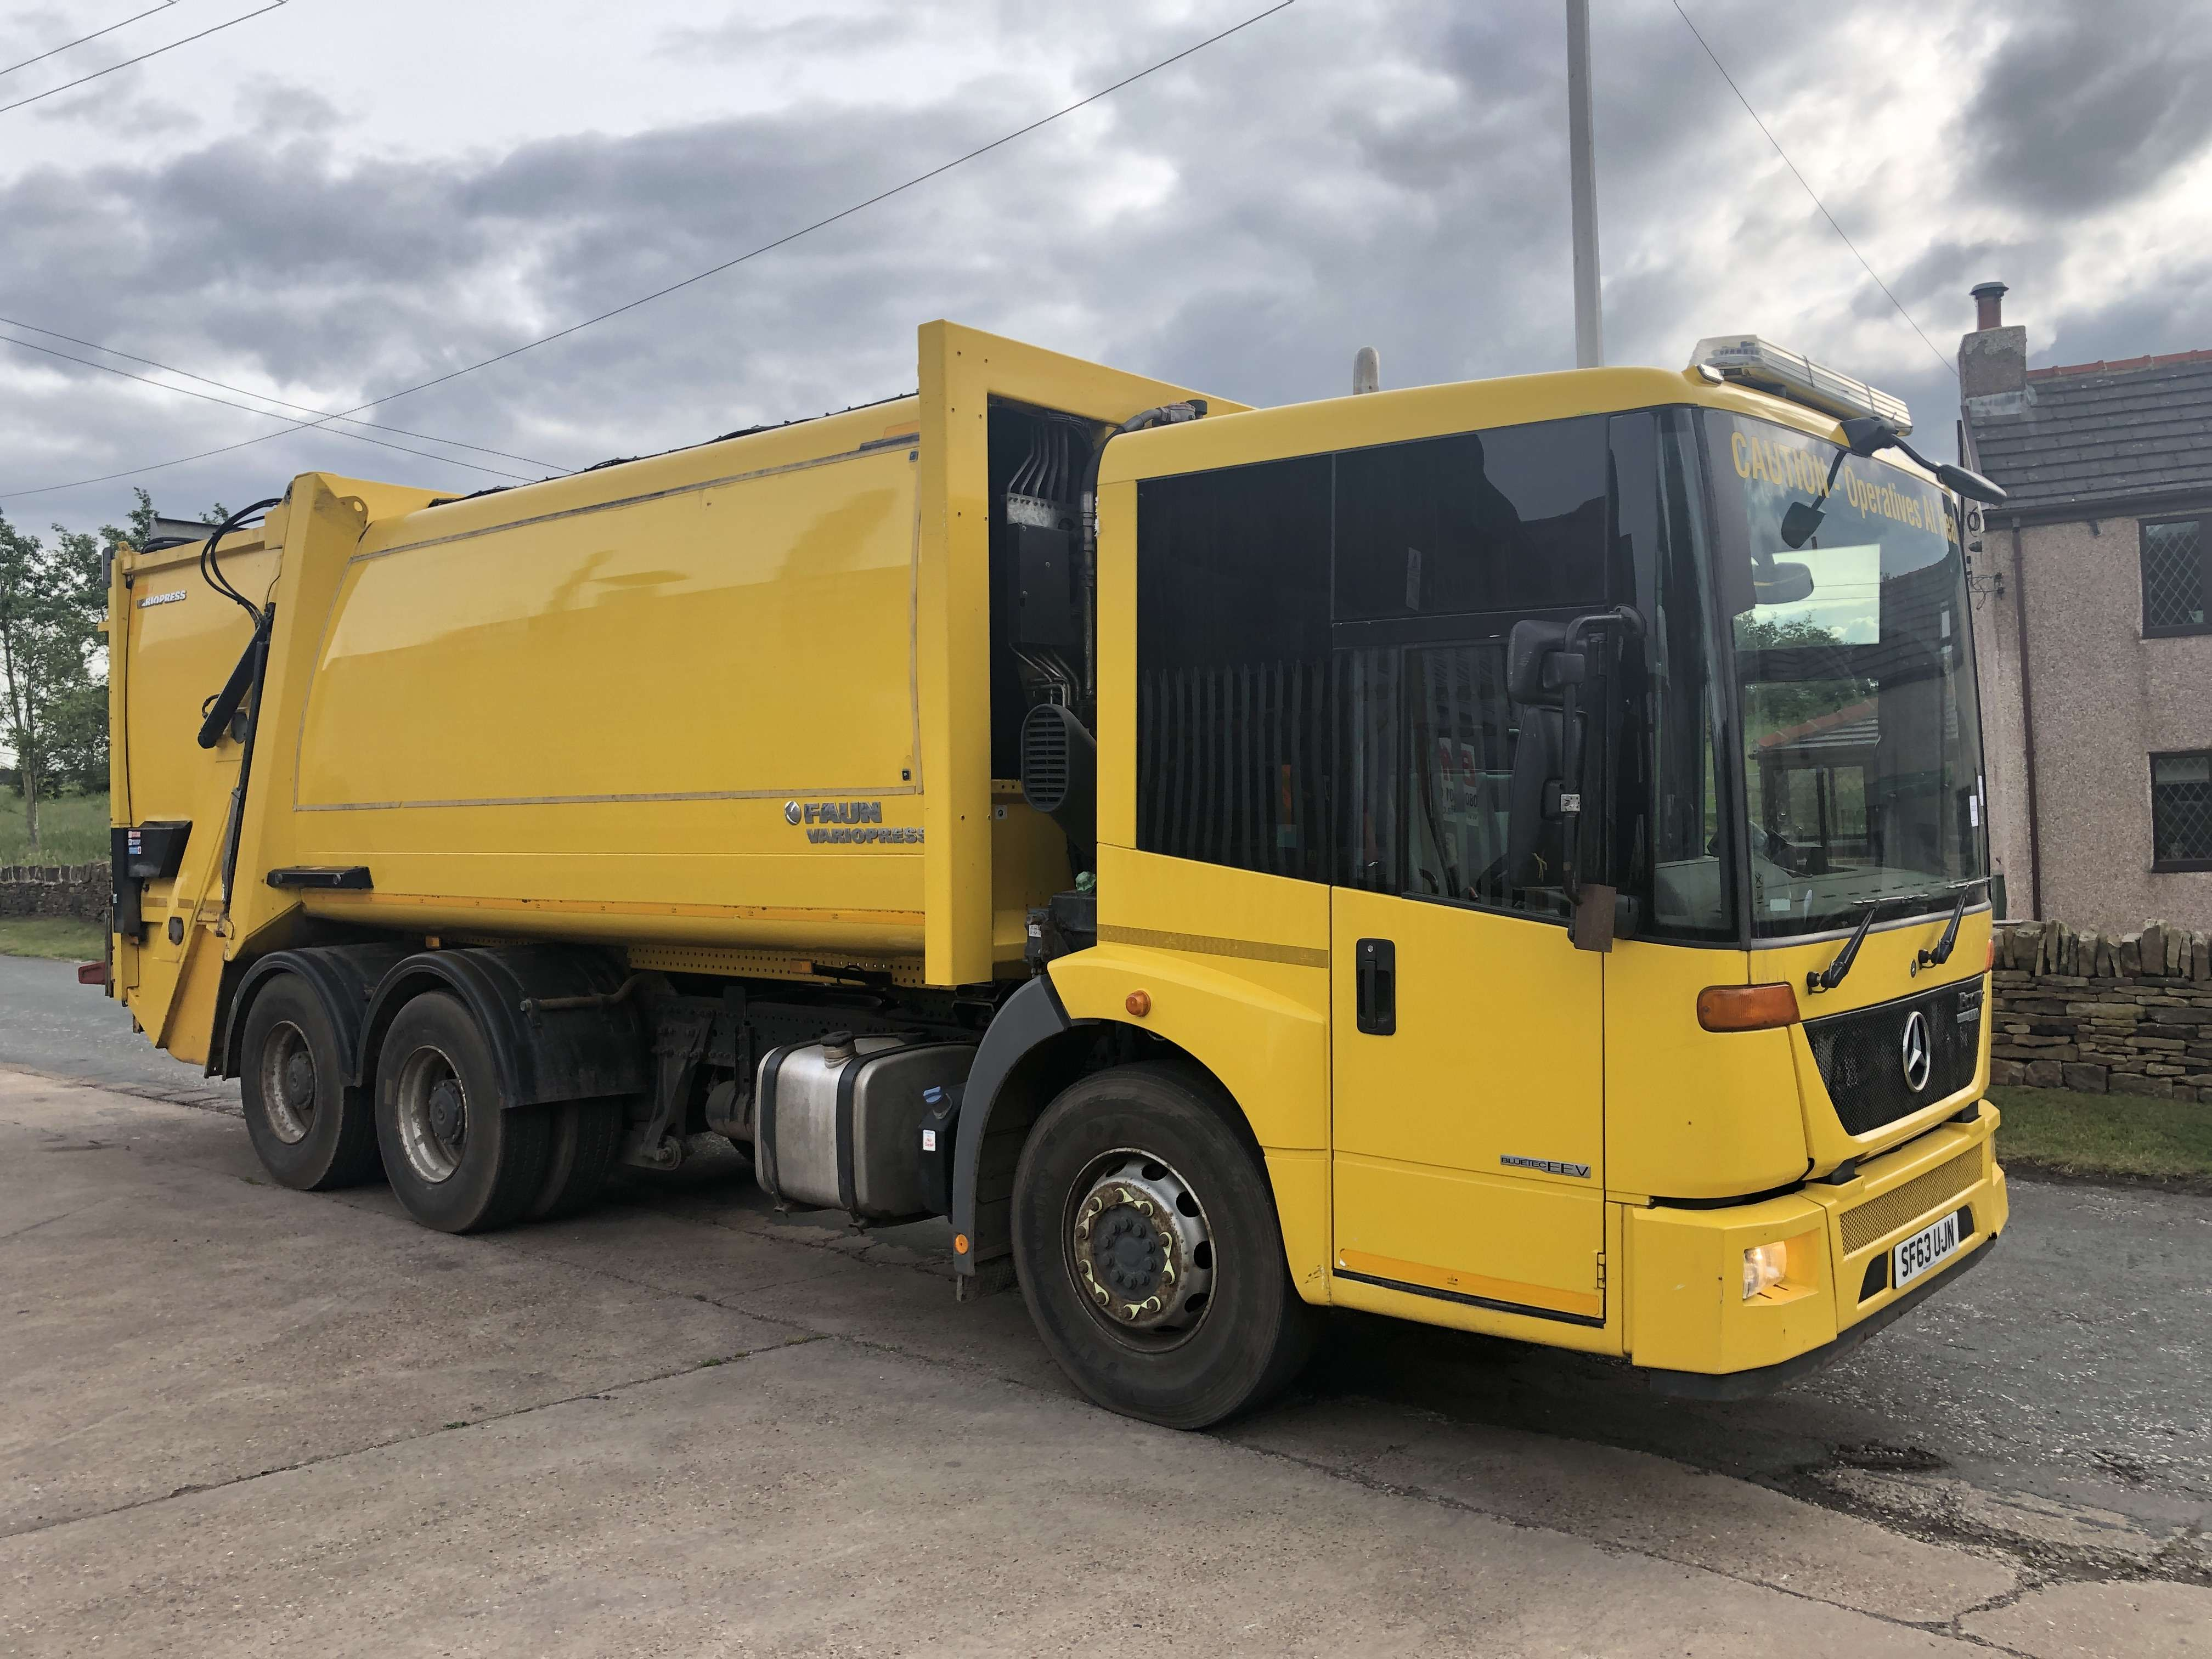 2013 Mercedes Econic refuse truck for sale 4